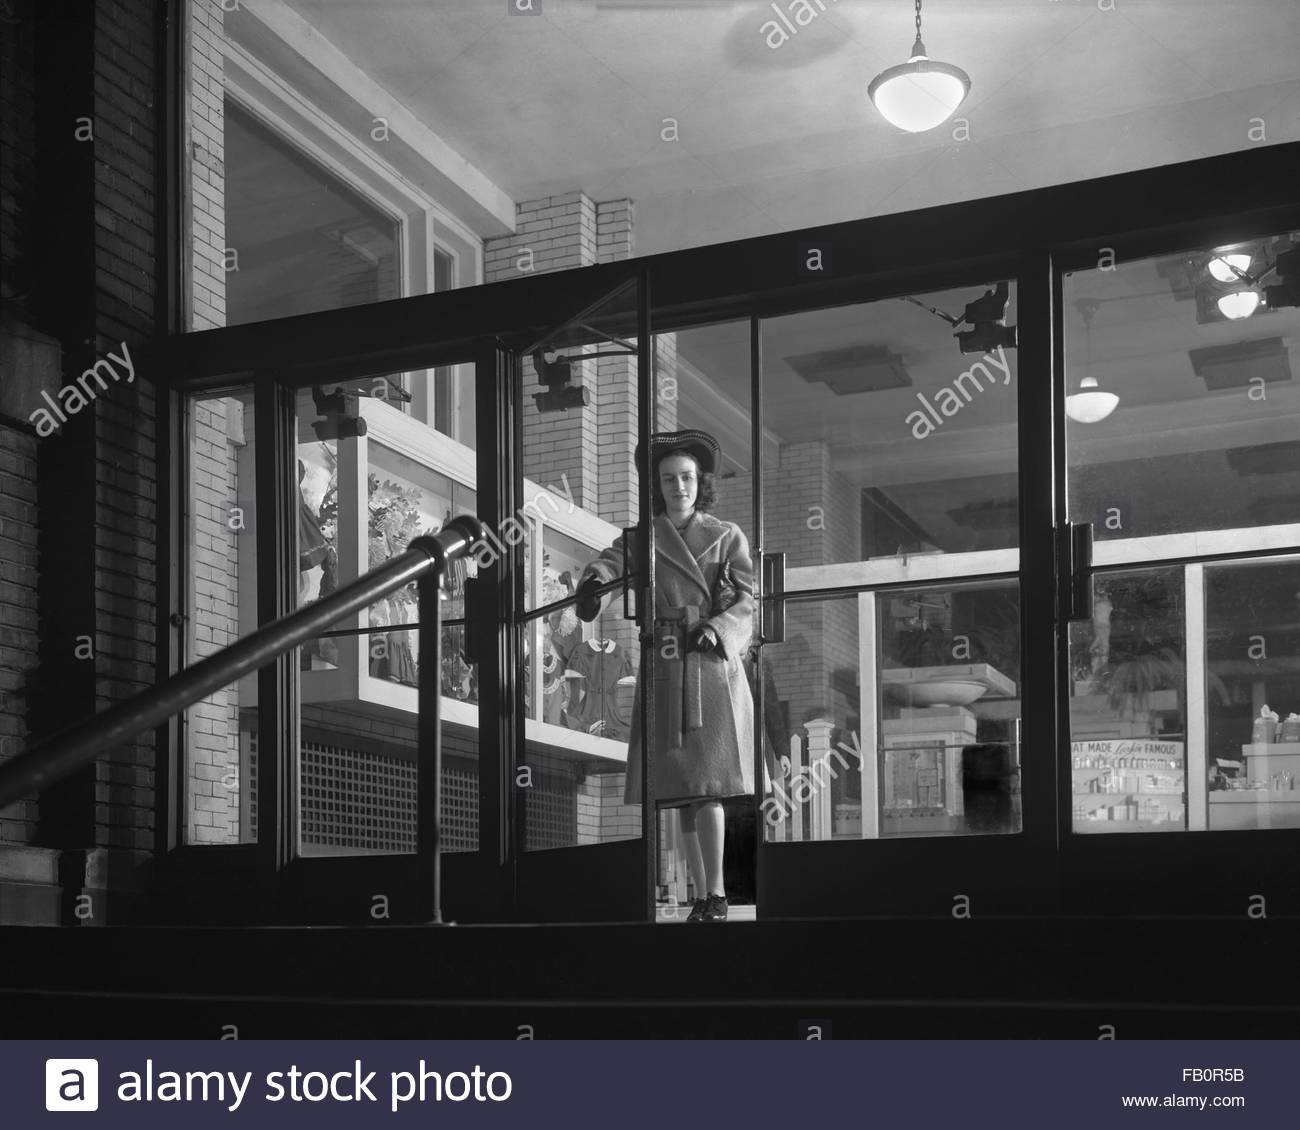 Entrance to Larkin Building in Buffalo (N.Y.) [graphic], 1942 Mar. View of the entrance to the Larkin Building at - Stock Image